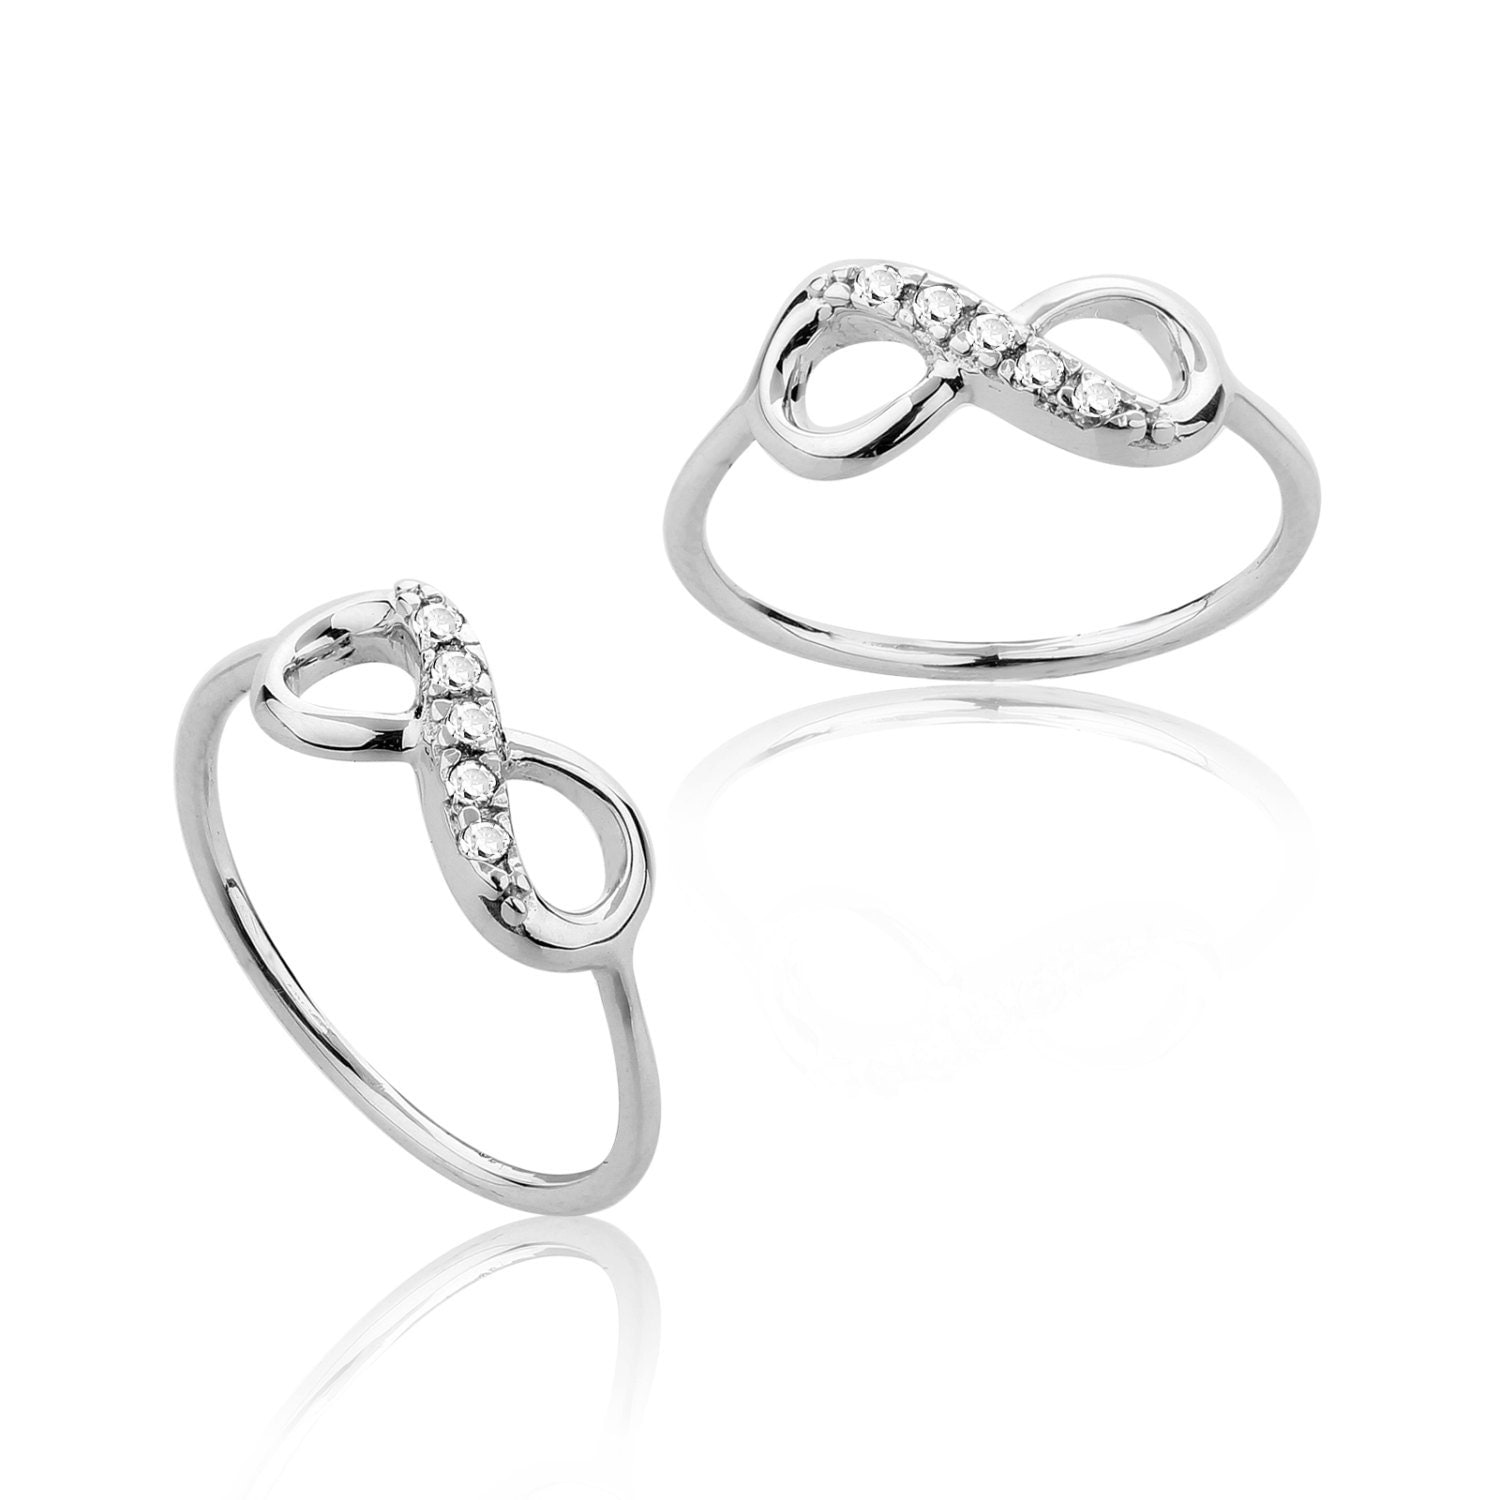 Tiffany & Co Inspired Infinity Ring Infinity love by MimicDesign